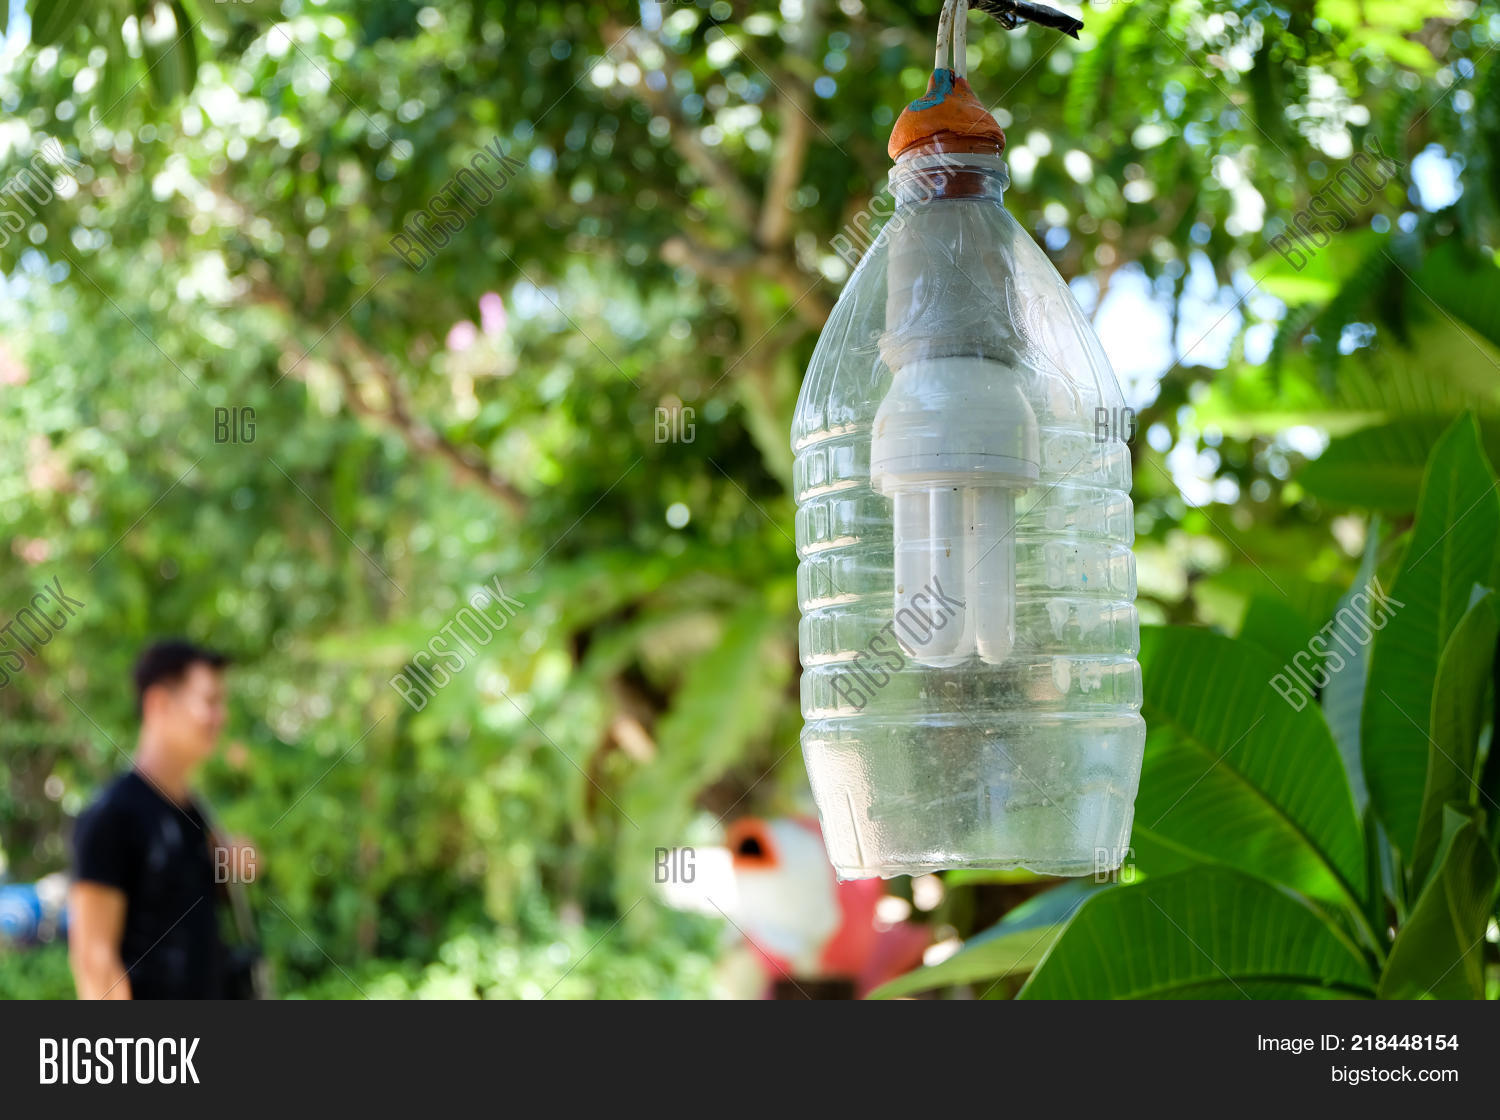 Recycled Plastic Bottle Lamp Garden Lamps Made Image Photo Free Trial Bigstock